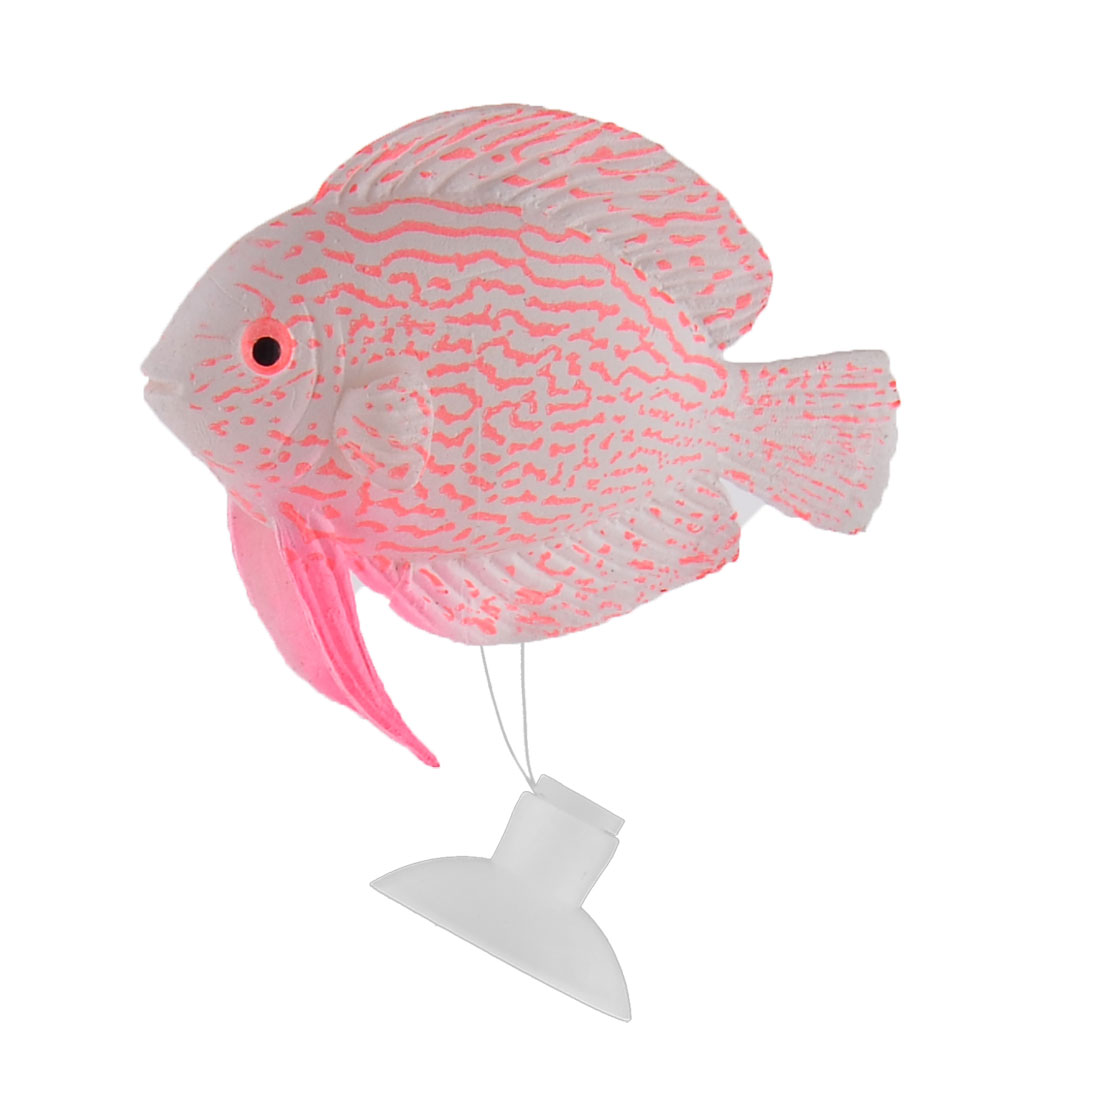 Home Aquarium Goldfish Tank Silicone Floating Artificial Simulation Fish Ornament Decor Pink